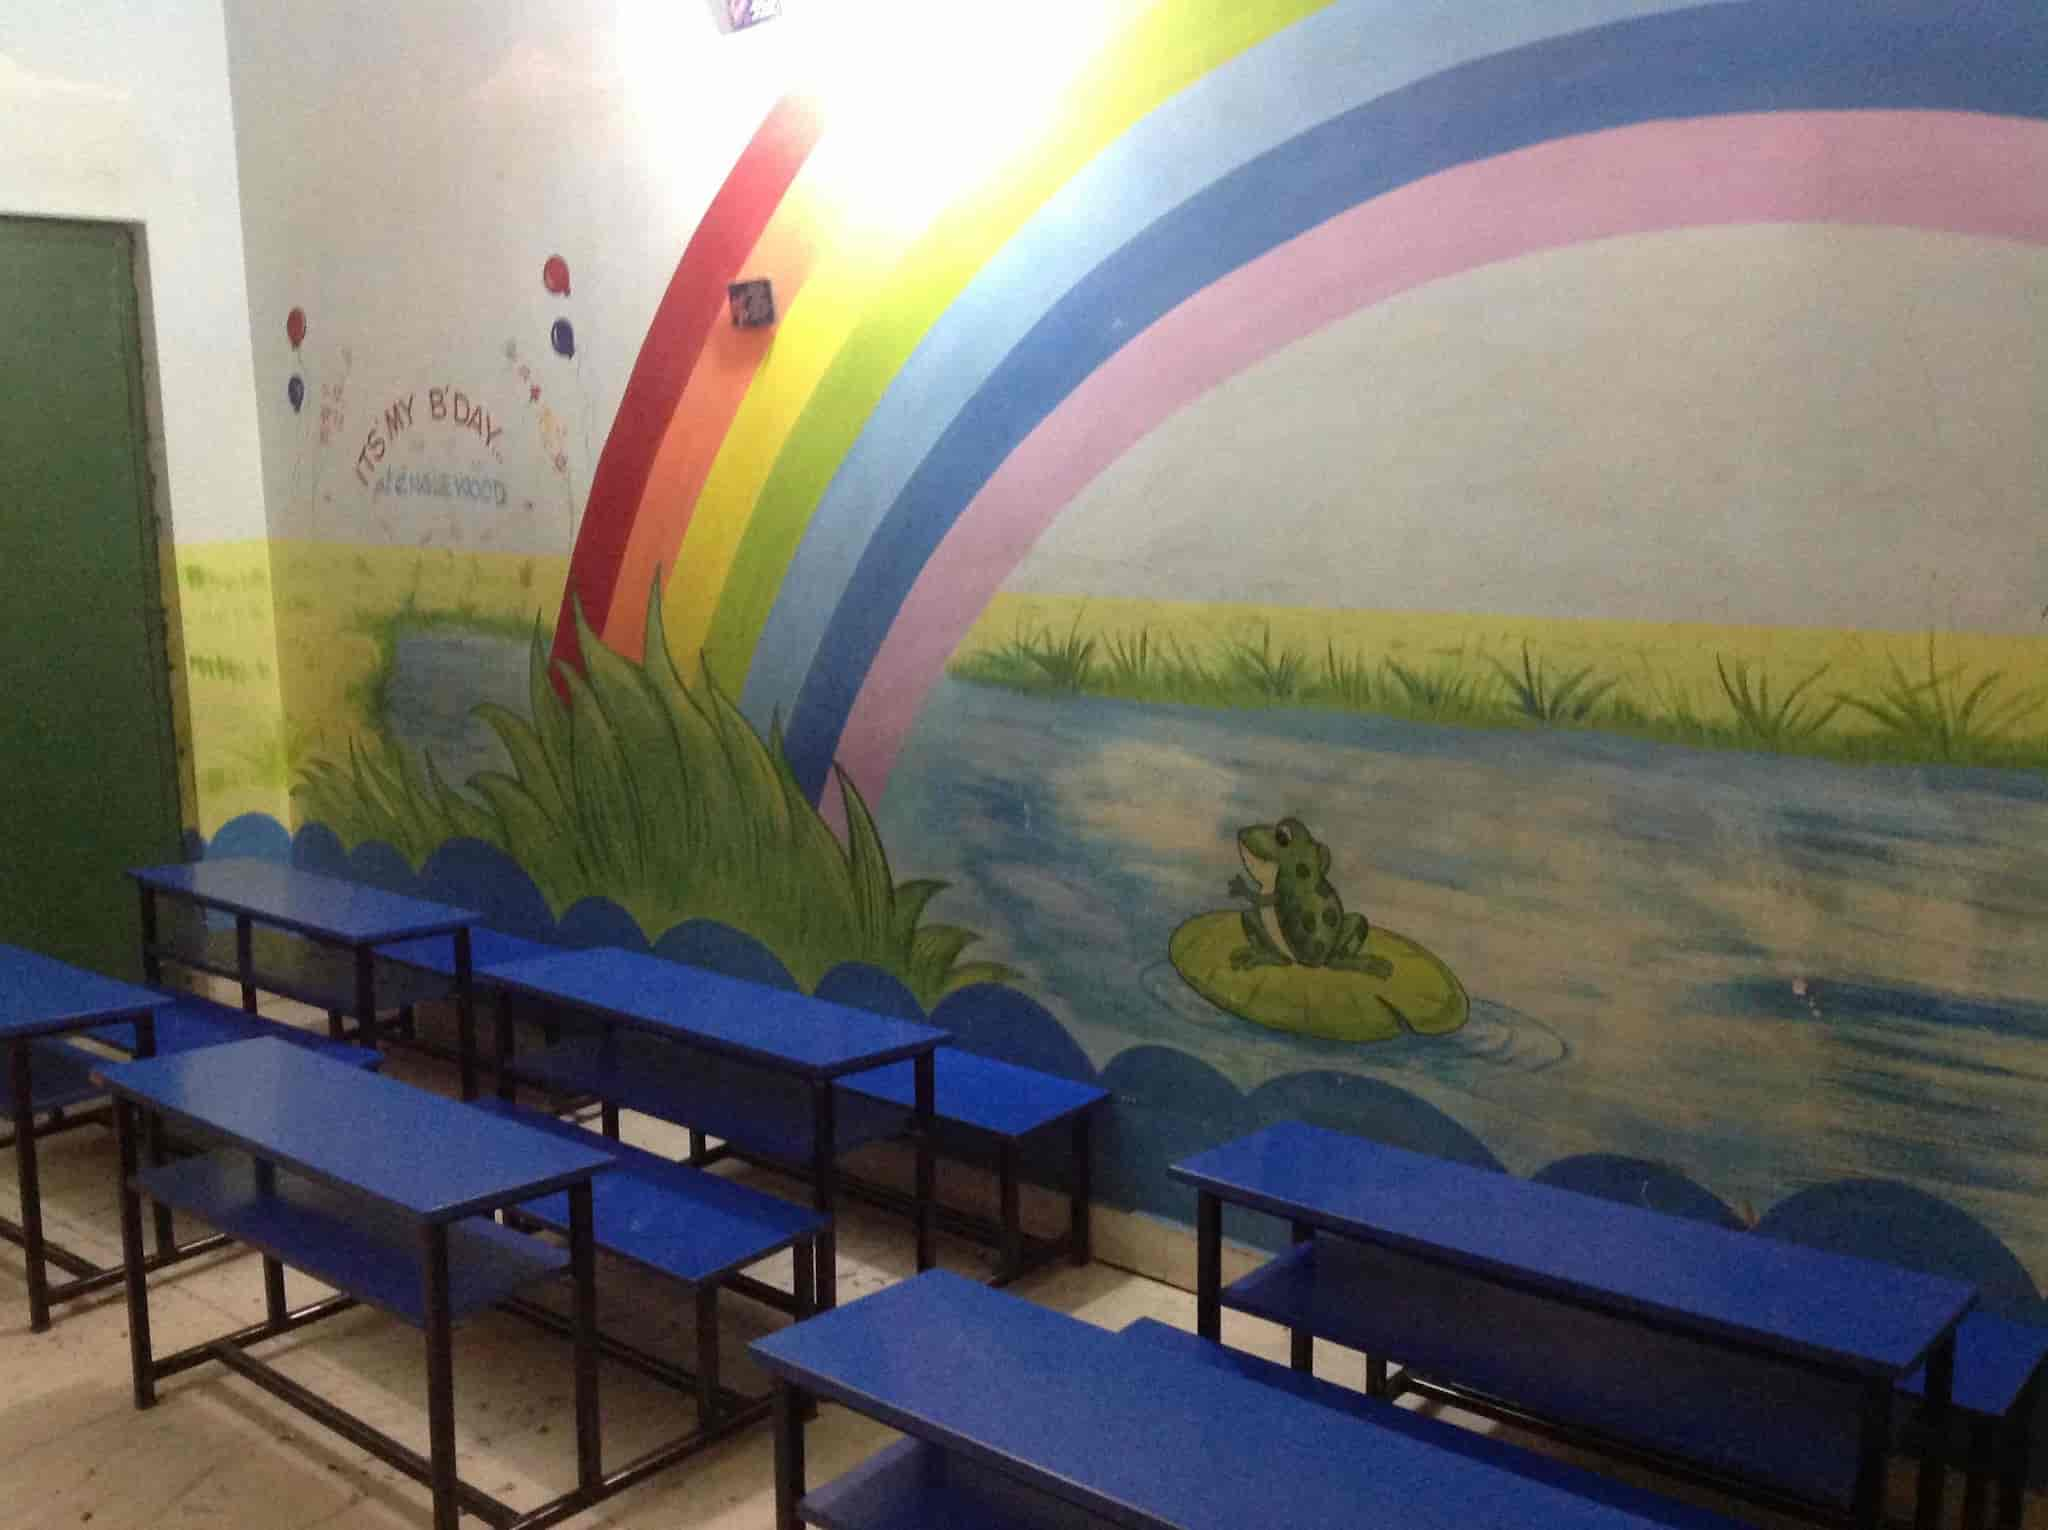 Wall Art Credence Credence Play School Day Care Photos Trimulgherry Hyderabad